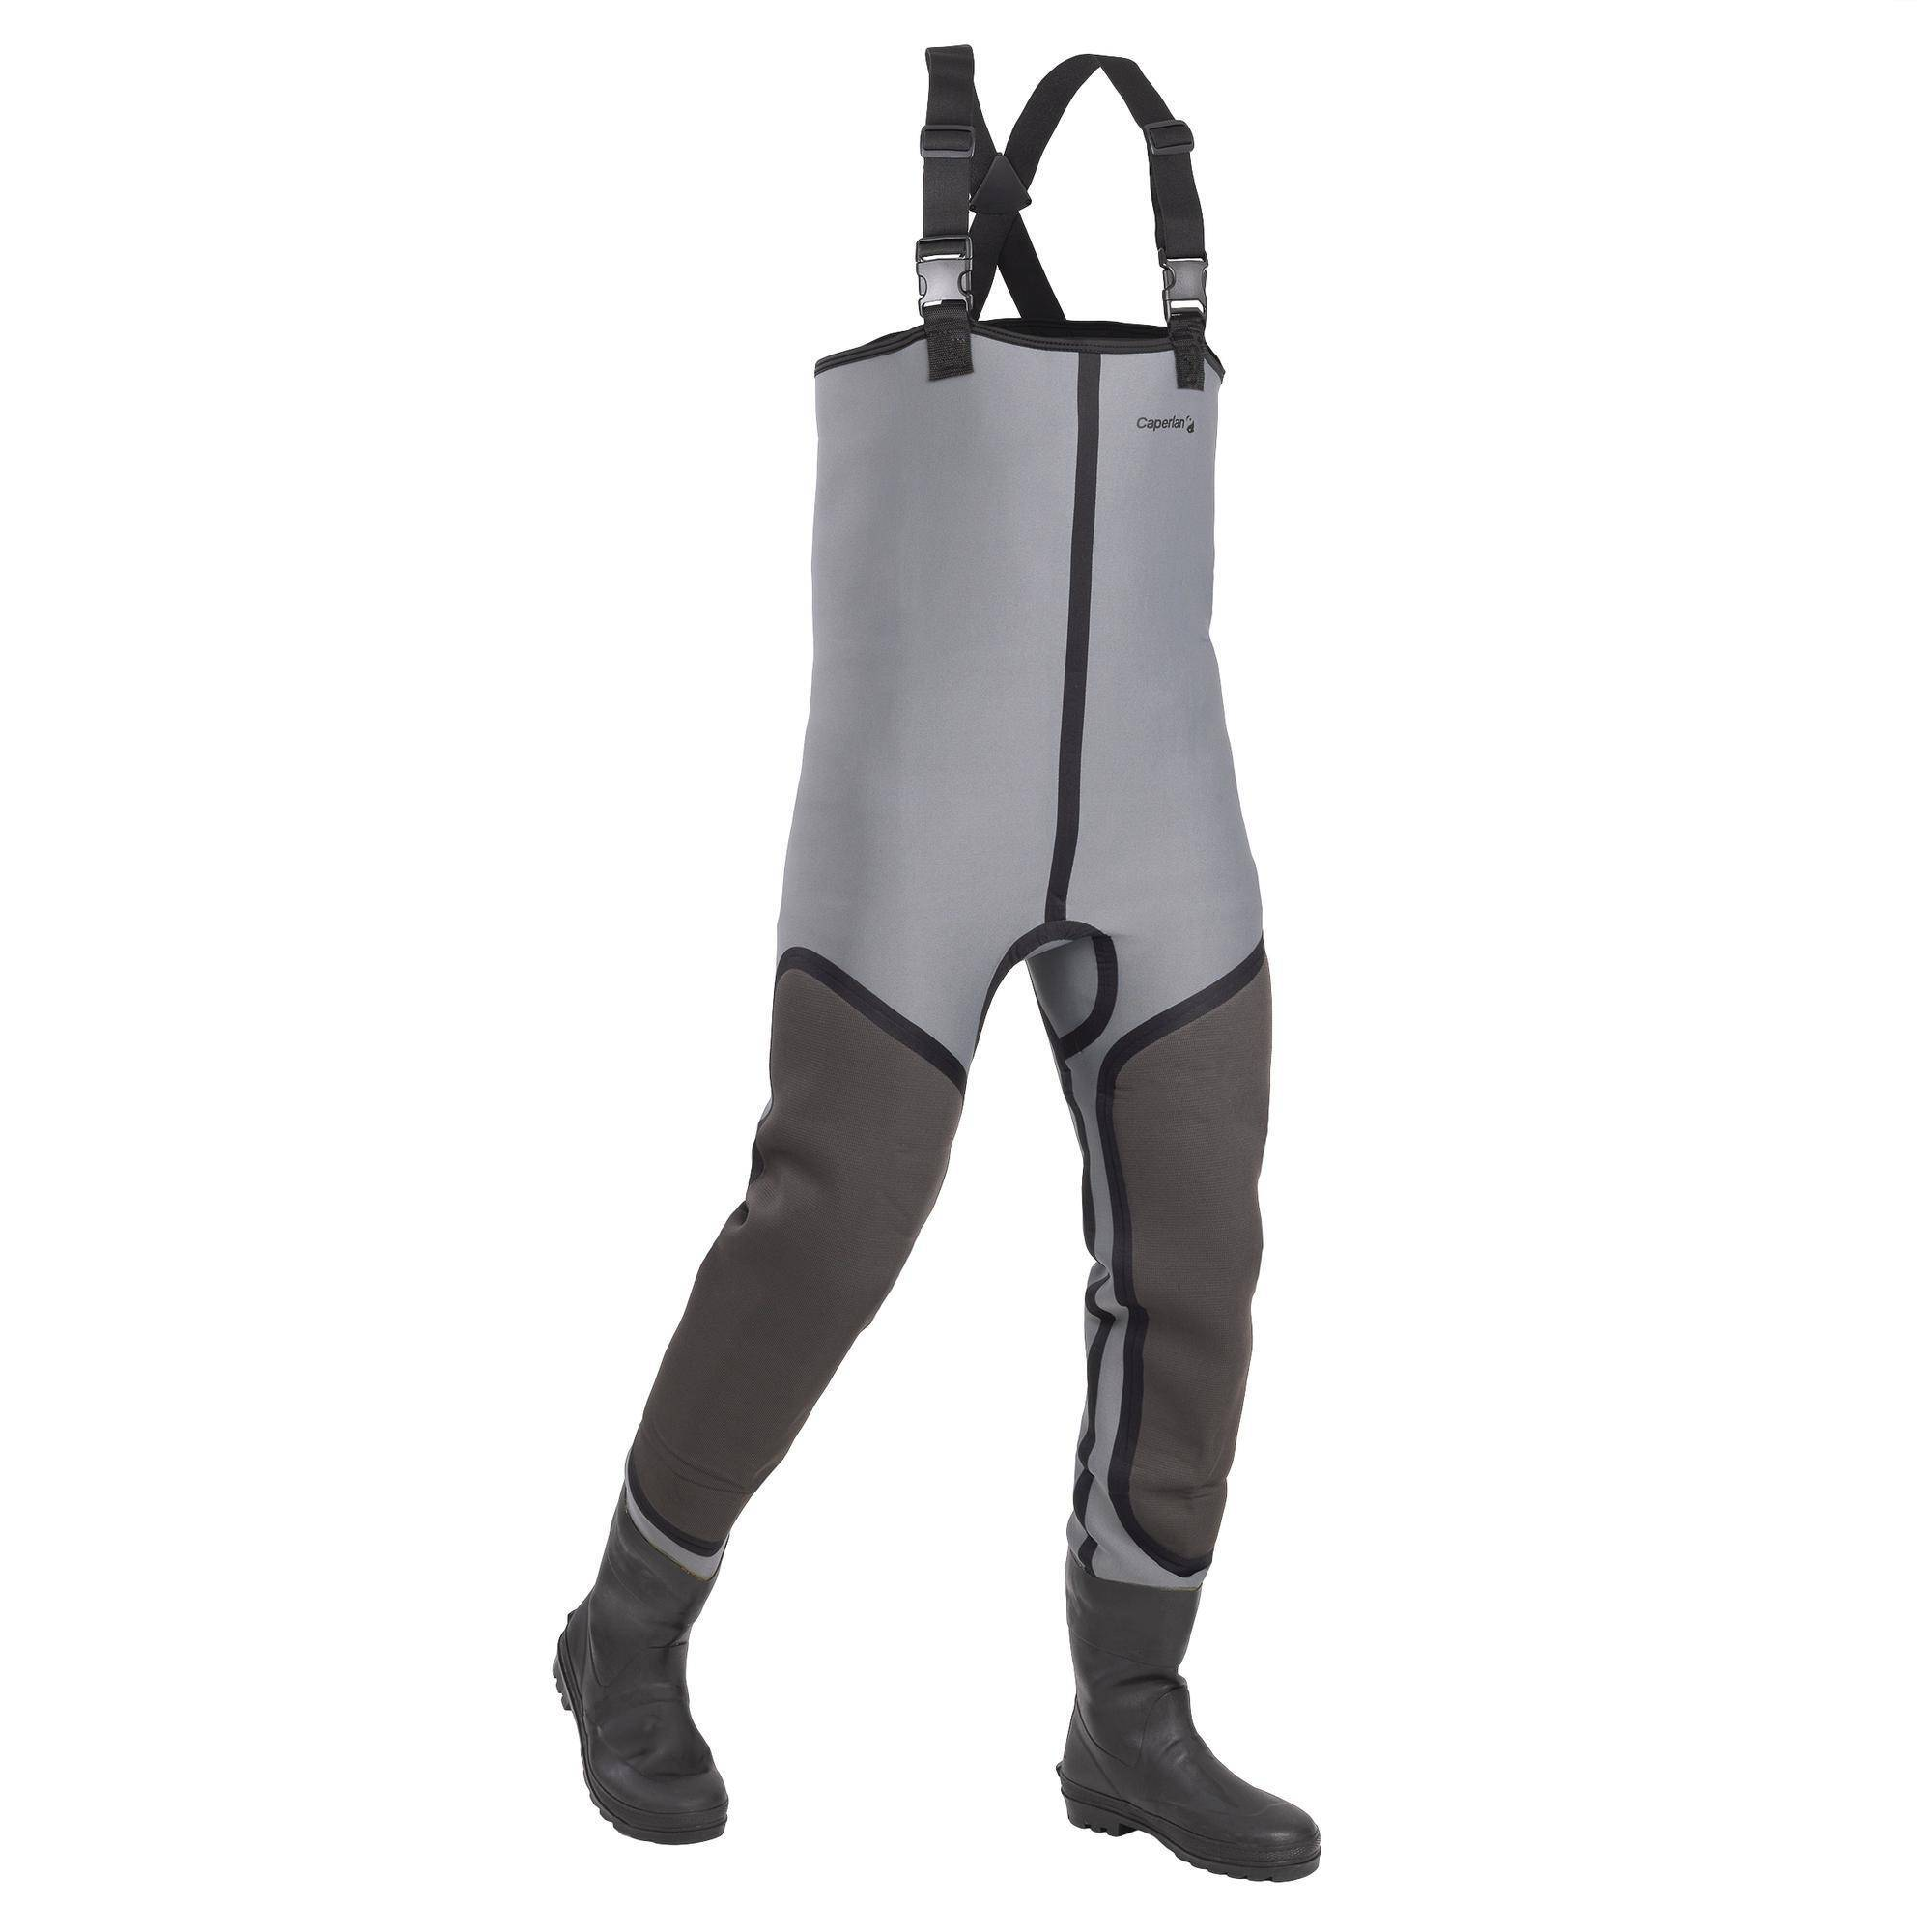 CAPERLAN Waders Pêche WDS-3 Thermo - CAPERLAN - 44/45